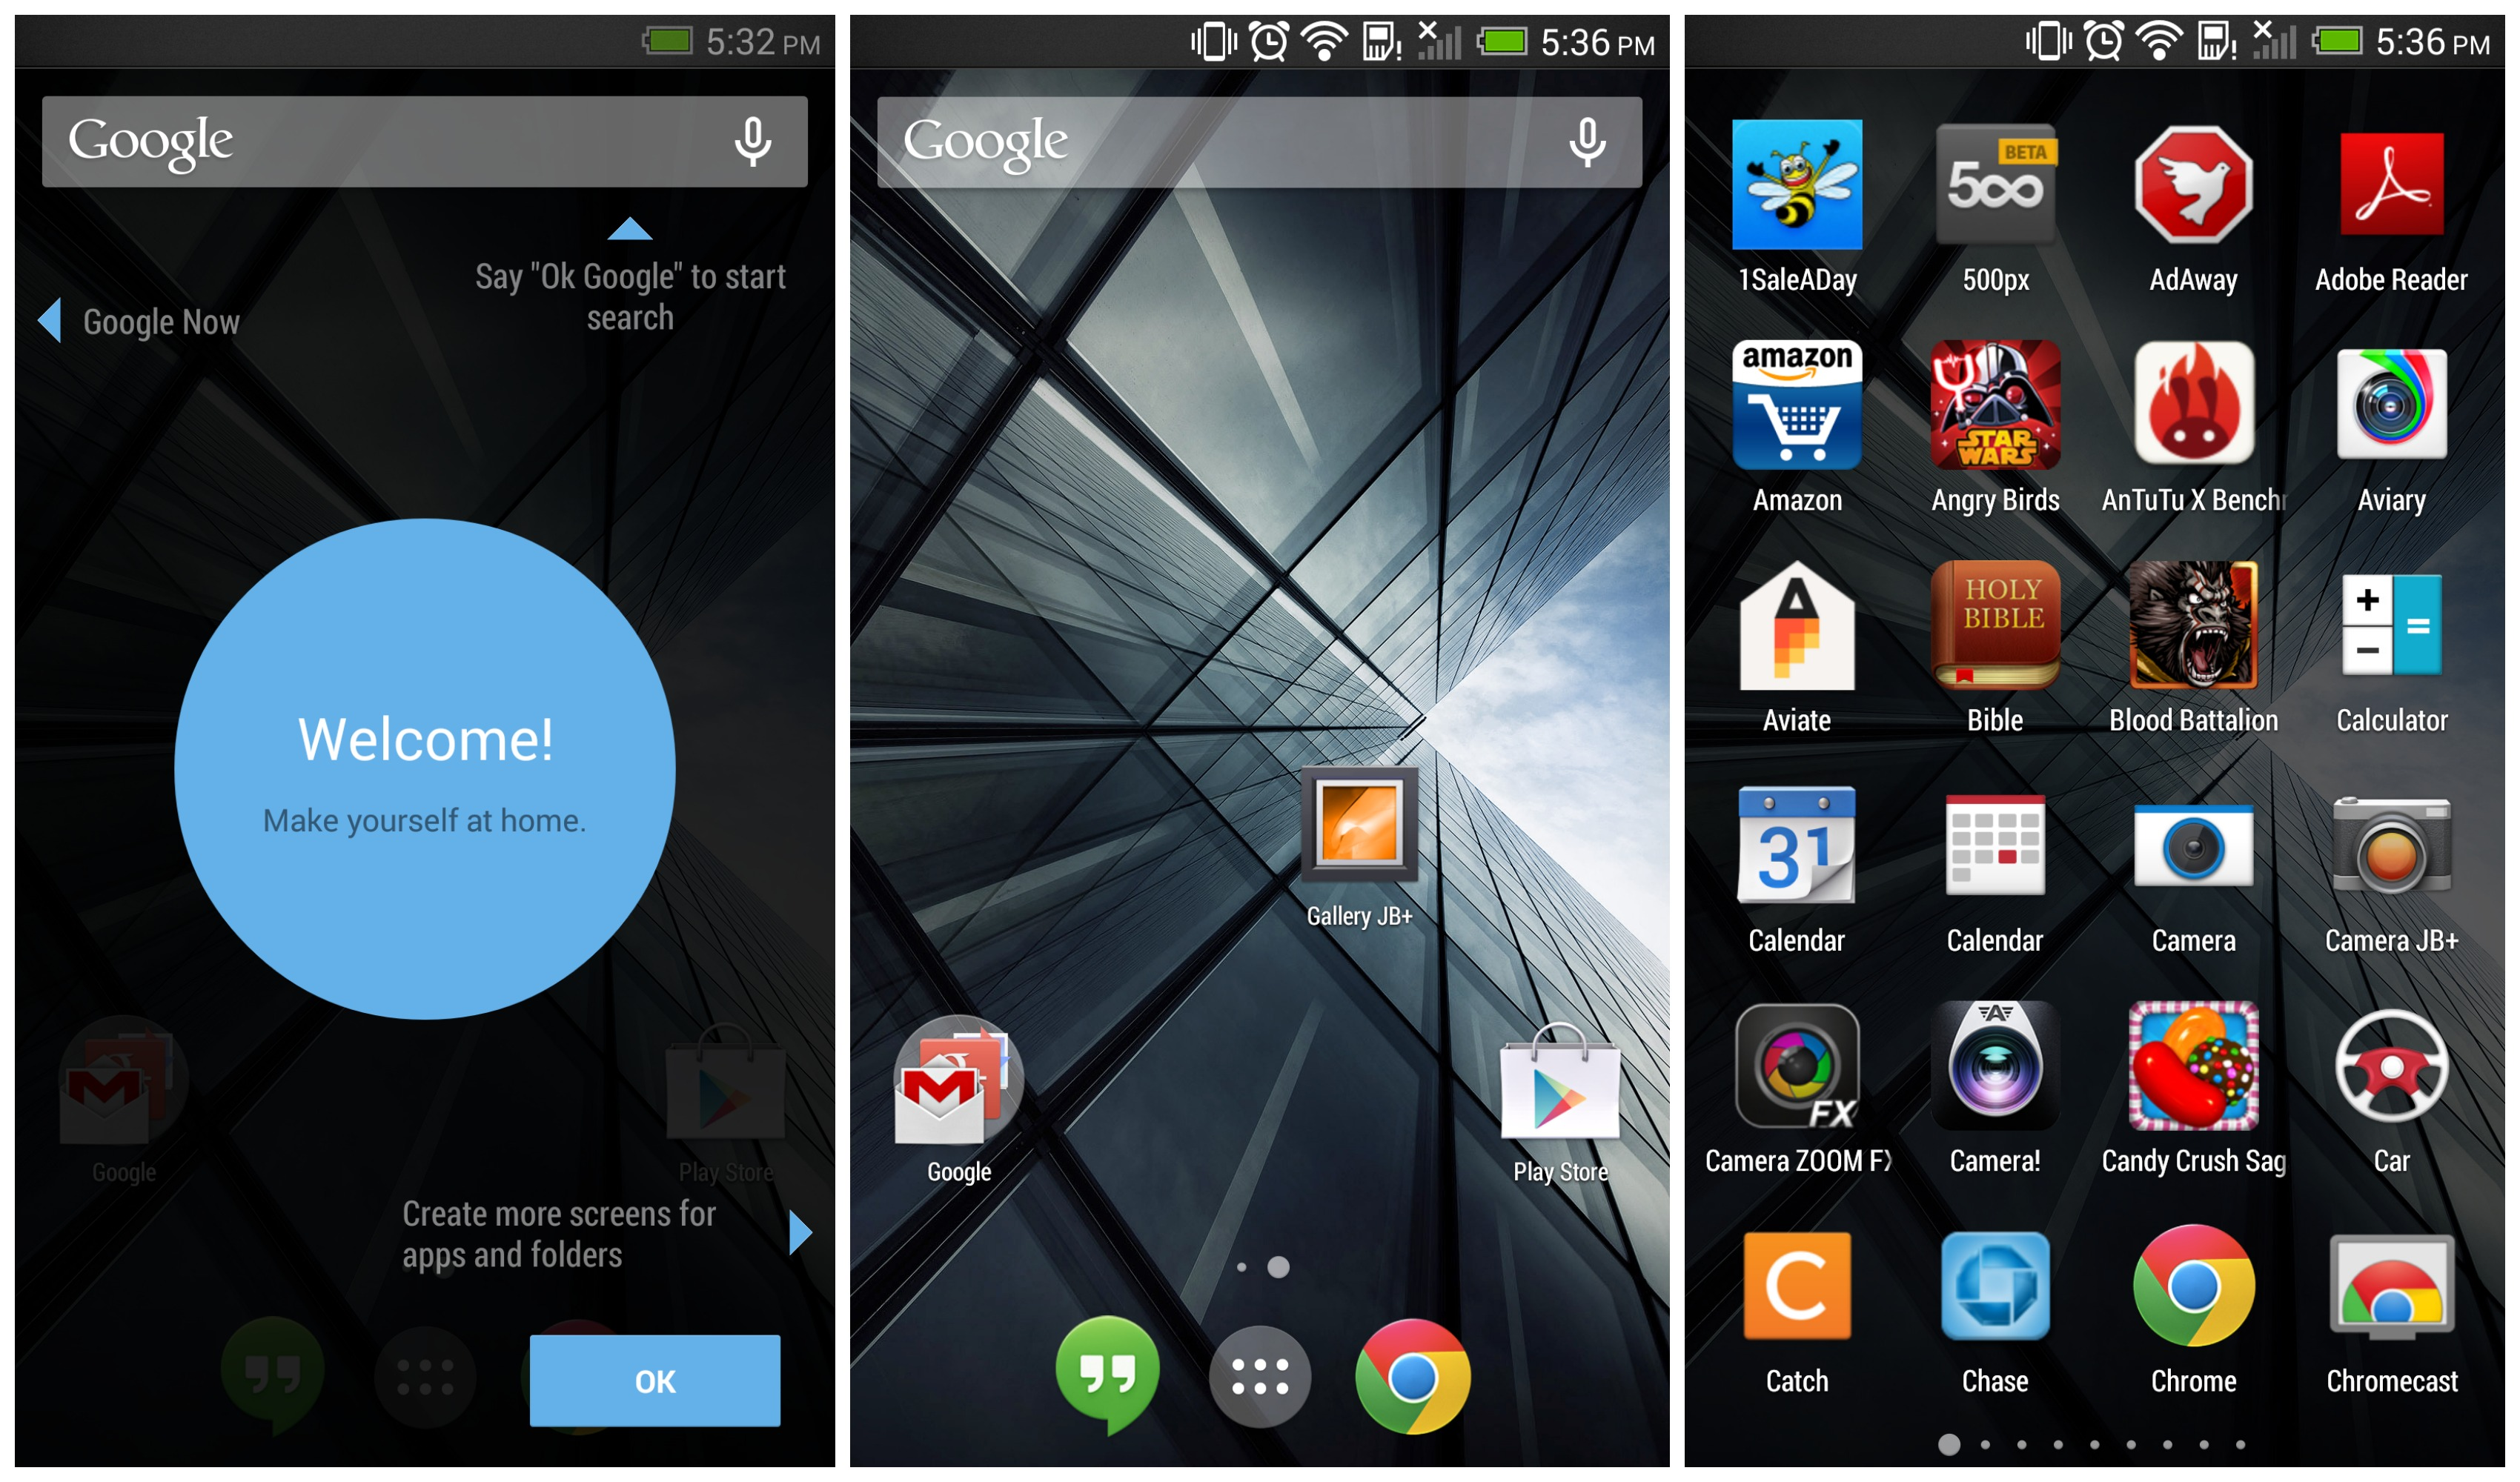 How to Install the New KitKat Launcher on Your Android Phone or Tablet